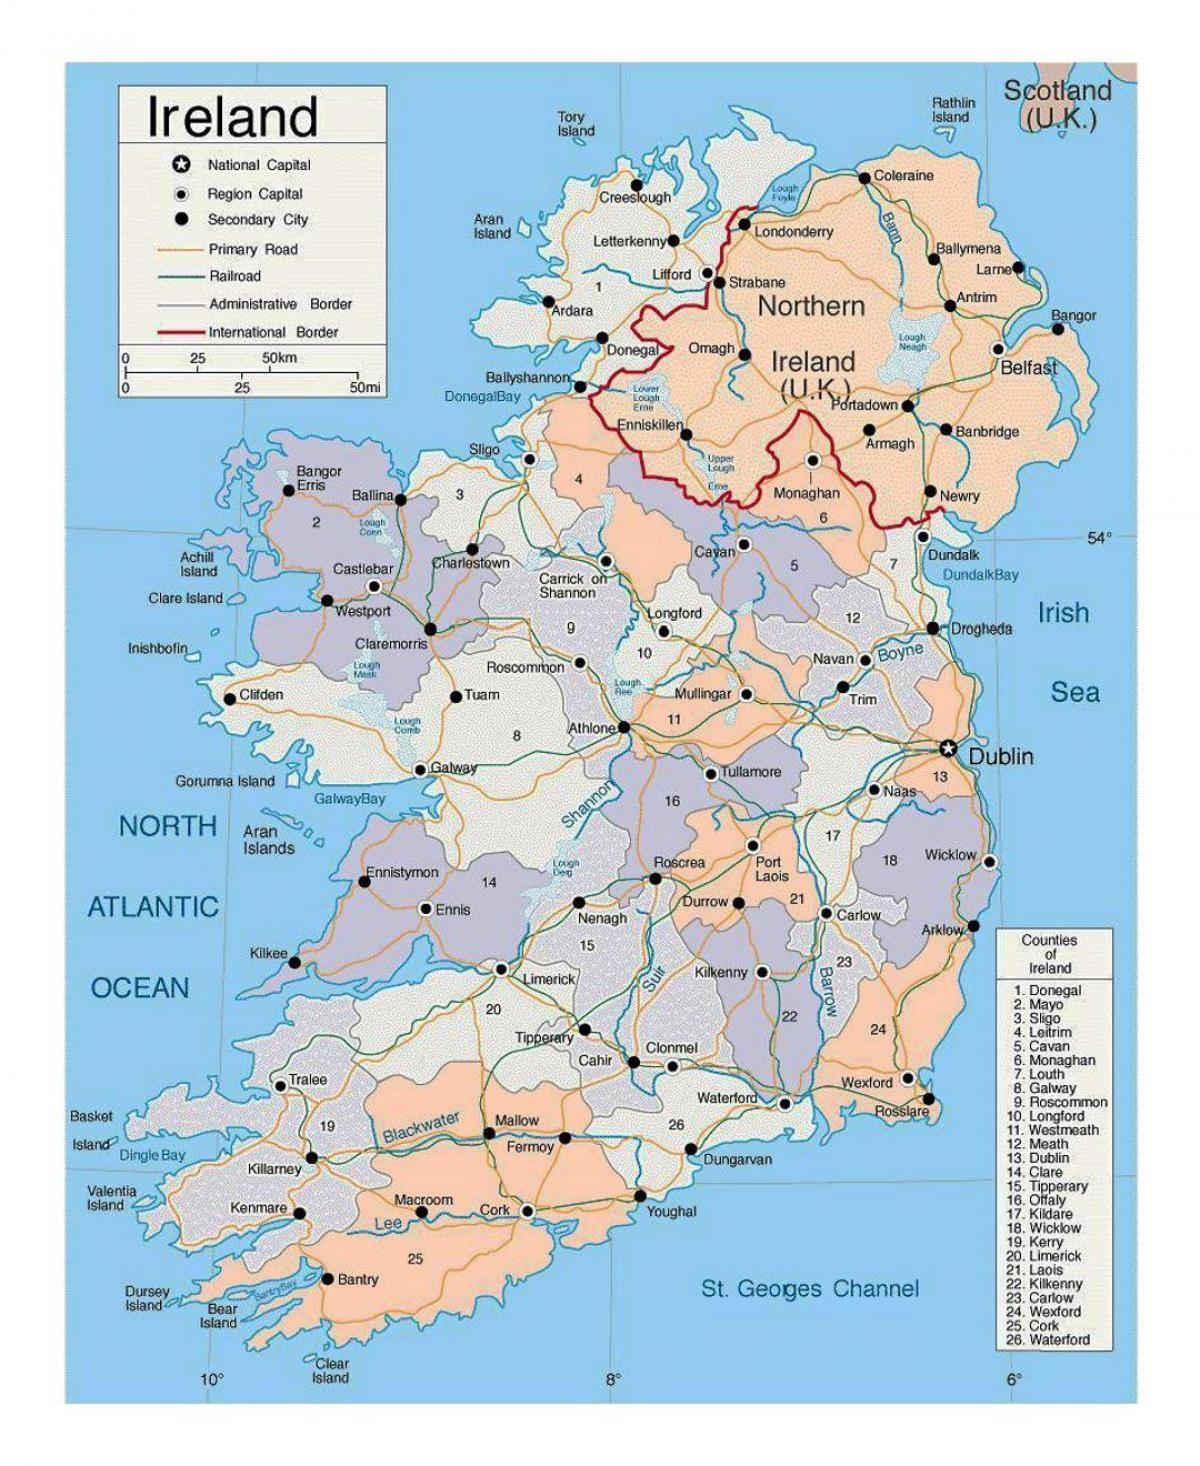 Map Of Northern Ireland Cities.Ireland Cities Map Map Of Ireland With Cities Northern Europe